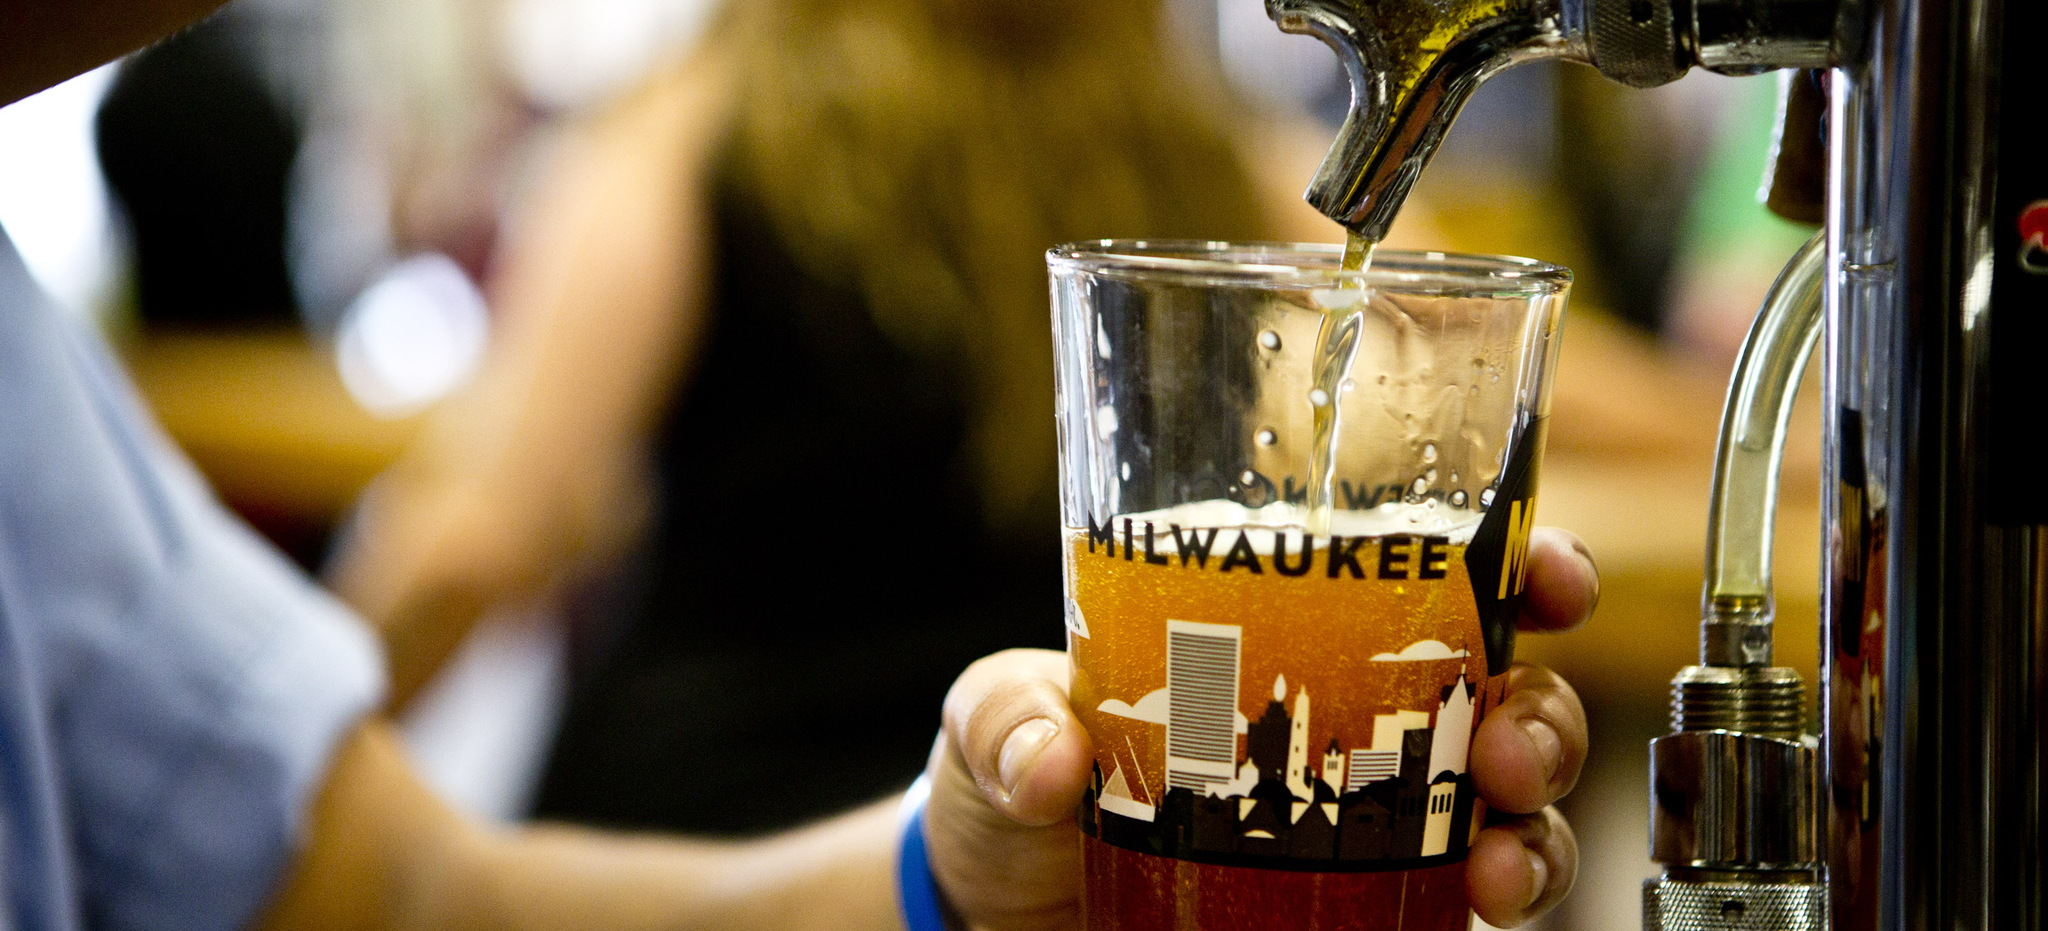 Brewery Tours - Once dubbed